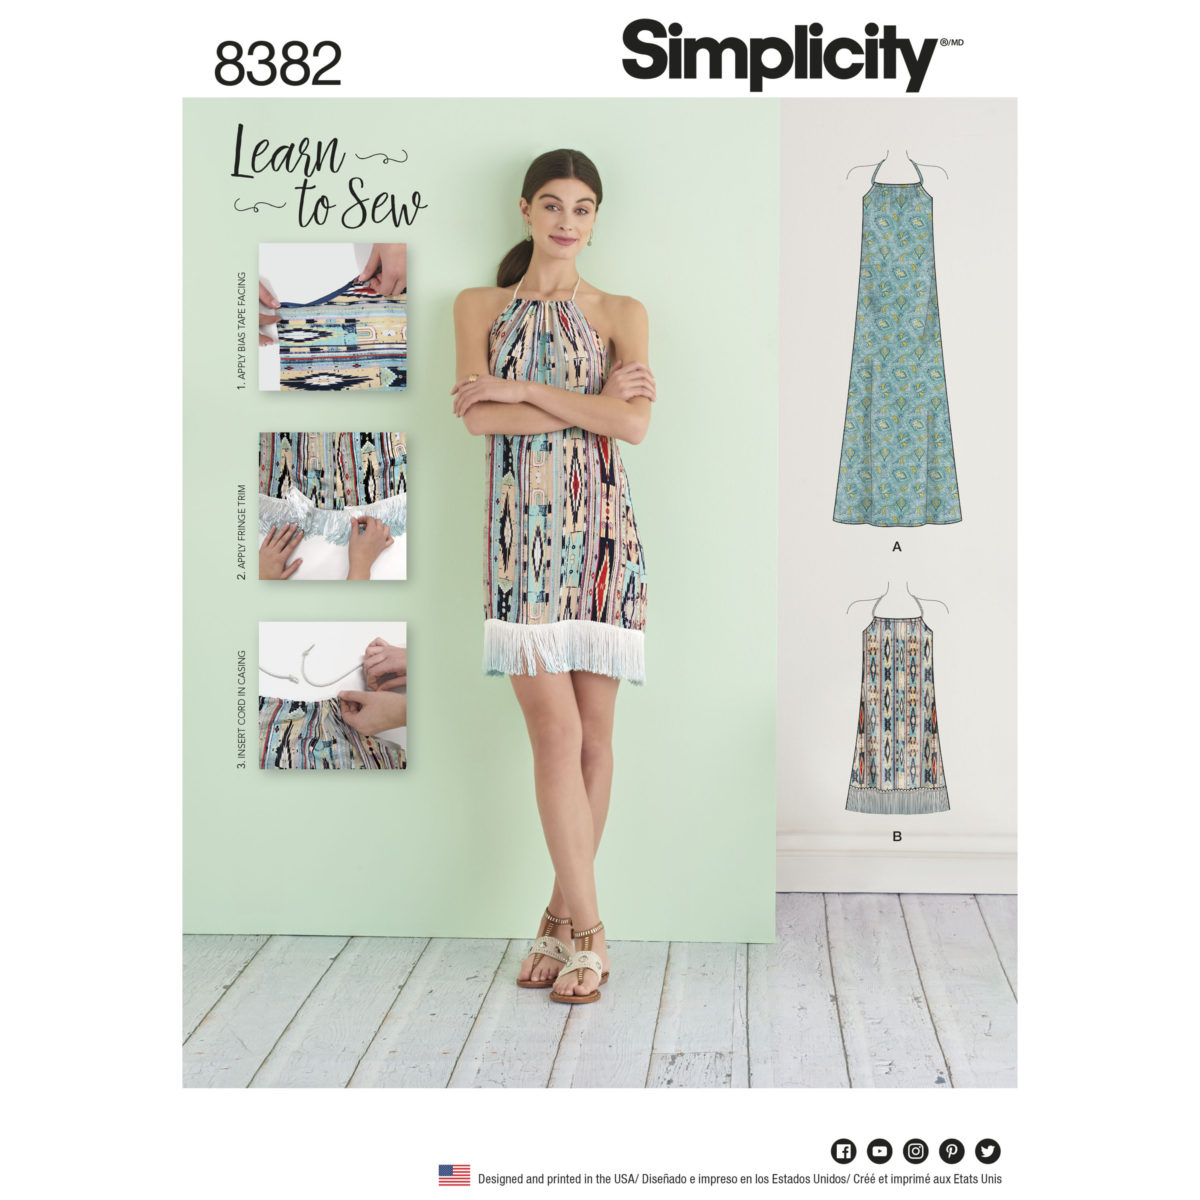 Simplicity Sewing Patterns Simplicity Sewing Pattern 8382 A Learn To Sew Summer Dress